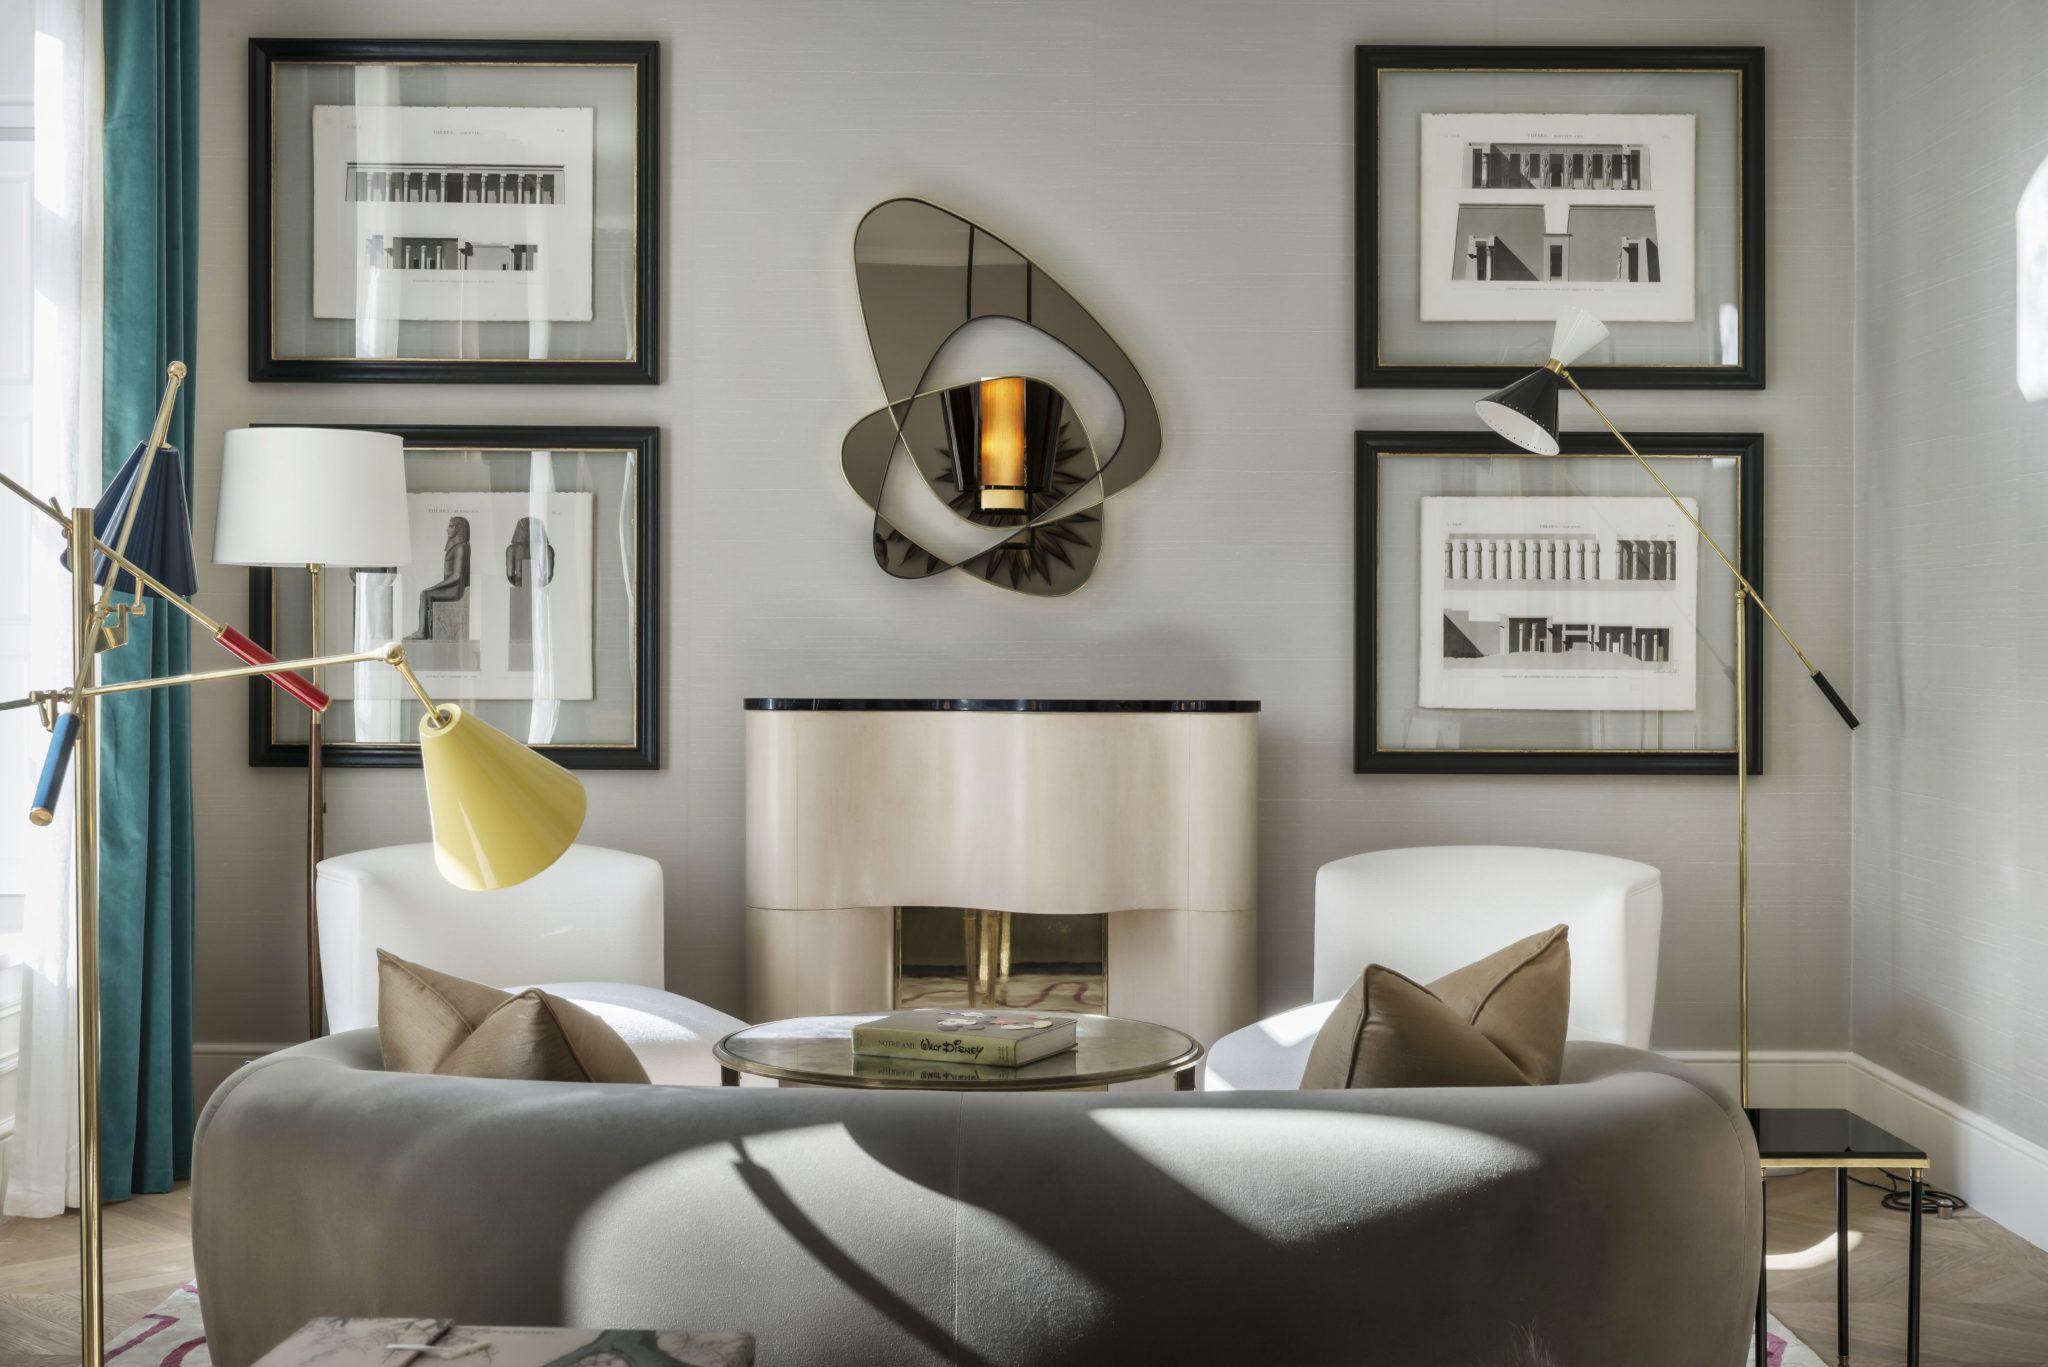 Paris living room with custom fireplace, sofa, chairs, and mirror by Salvagni by Achille Salvagni Architetti